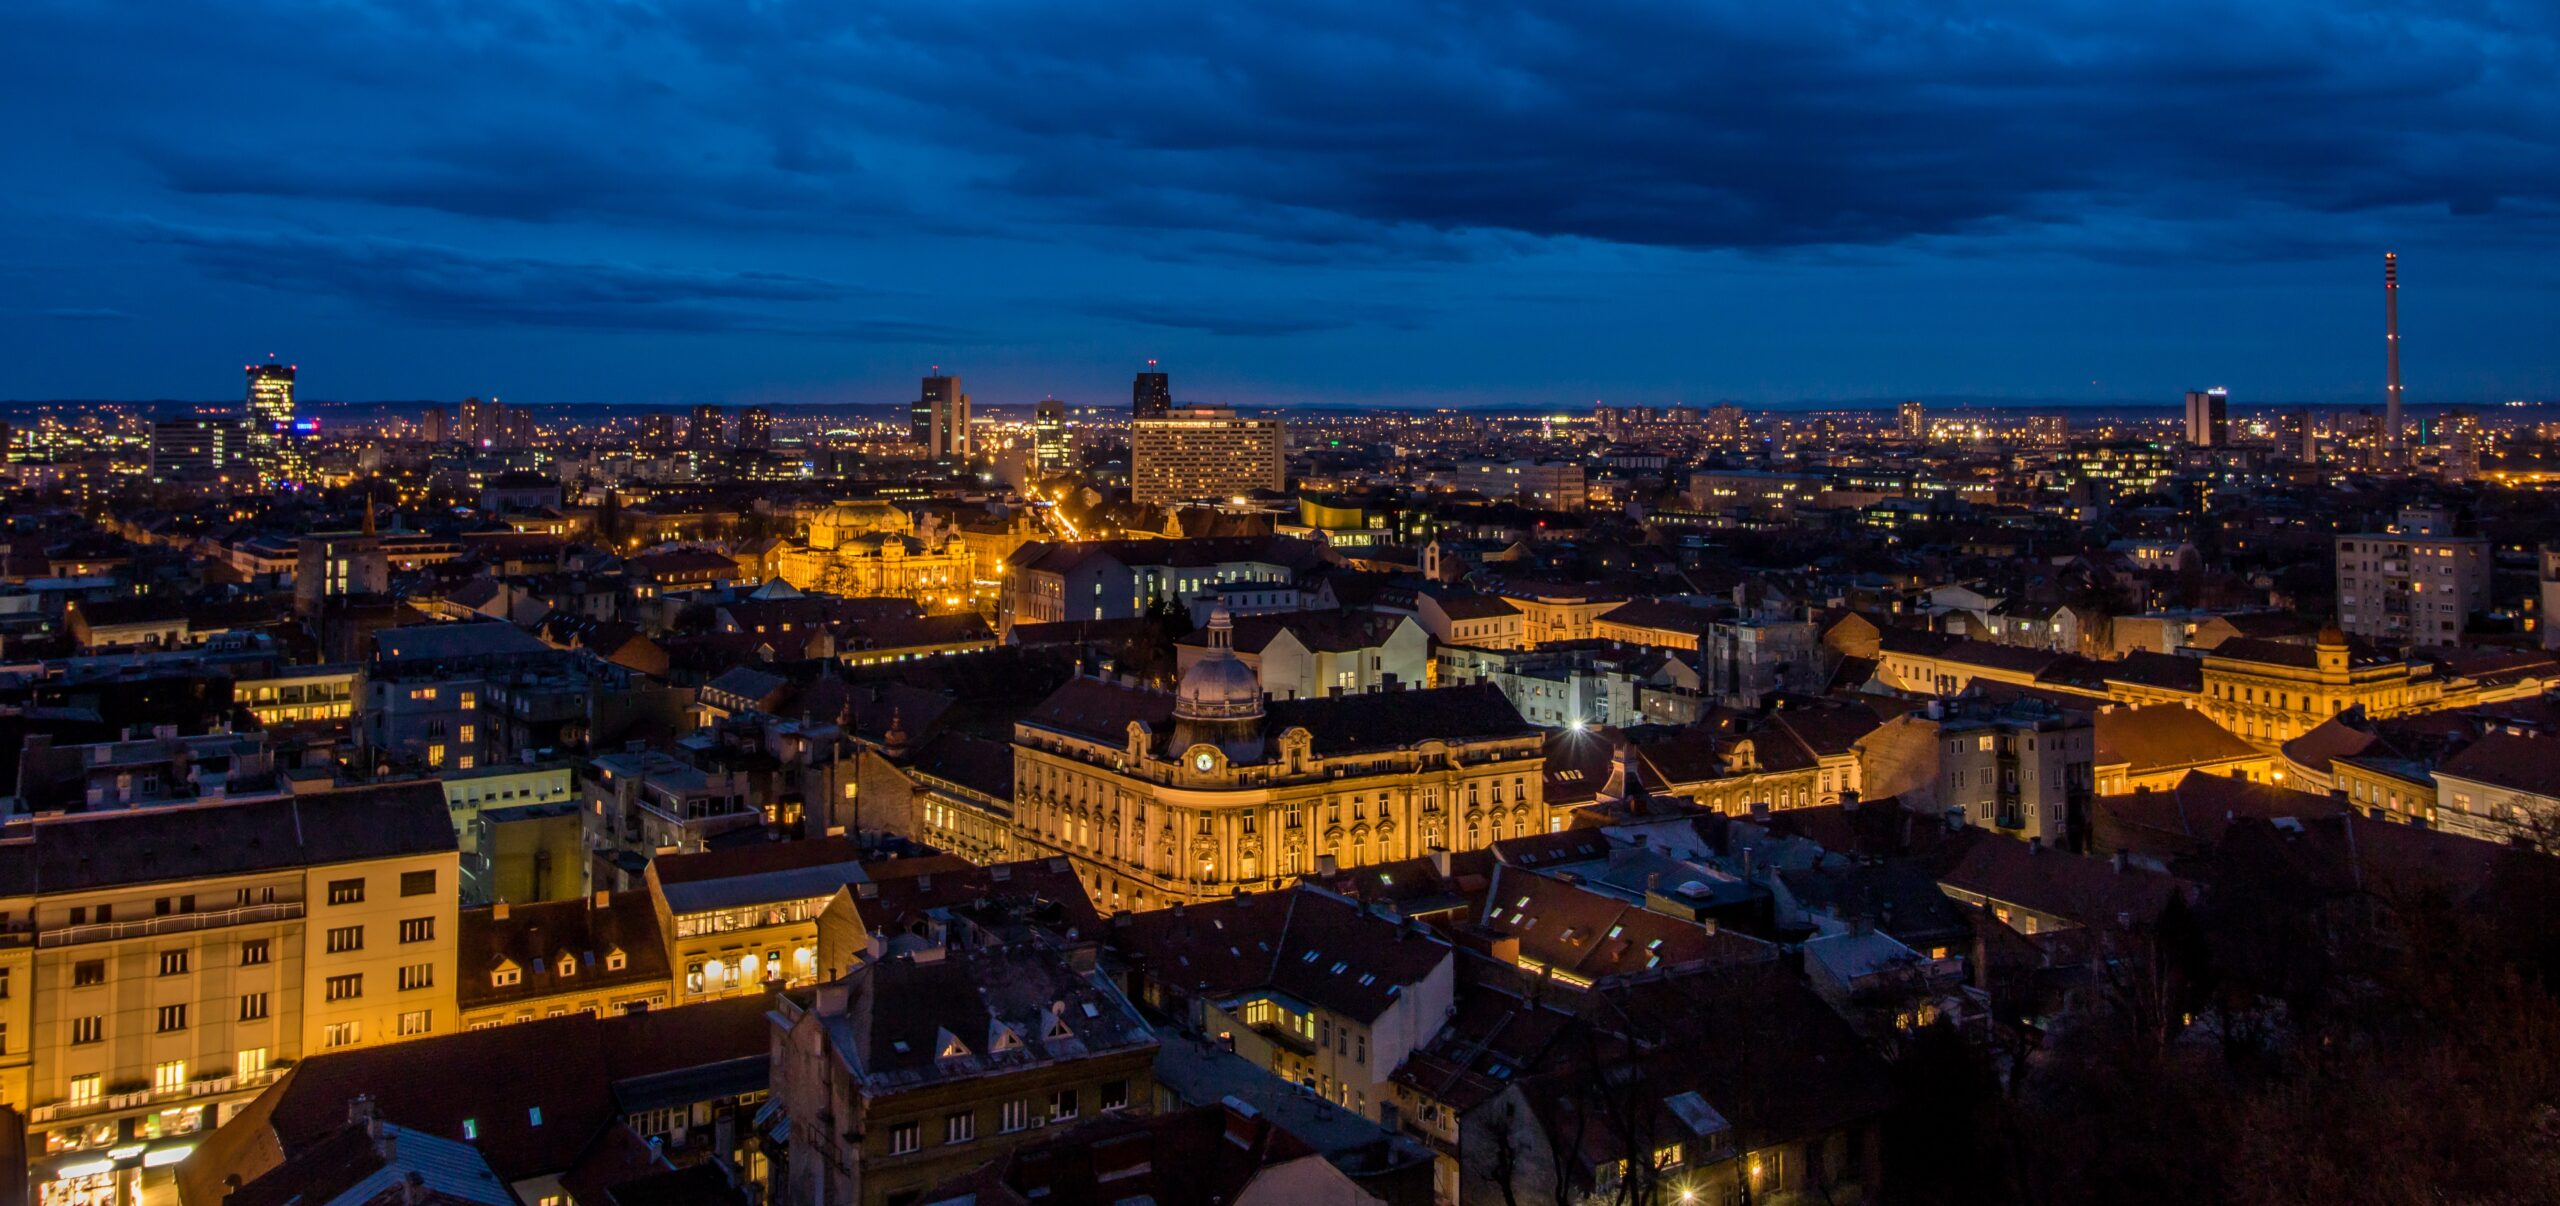 Zagreb At Night Tour On Our 7 Day Secrets Of Zagreb & Istrian Coast Tour Package